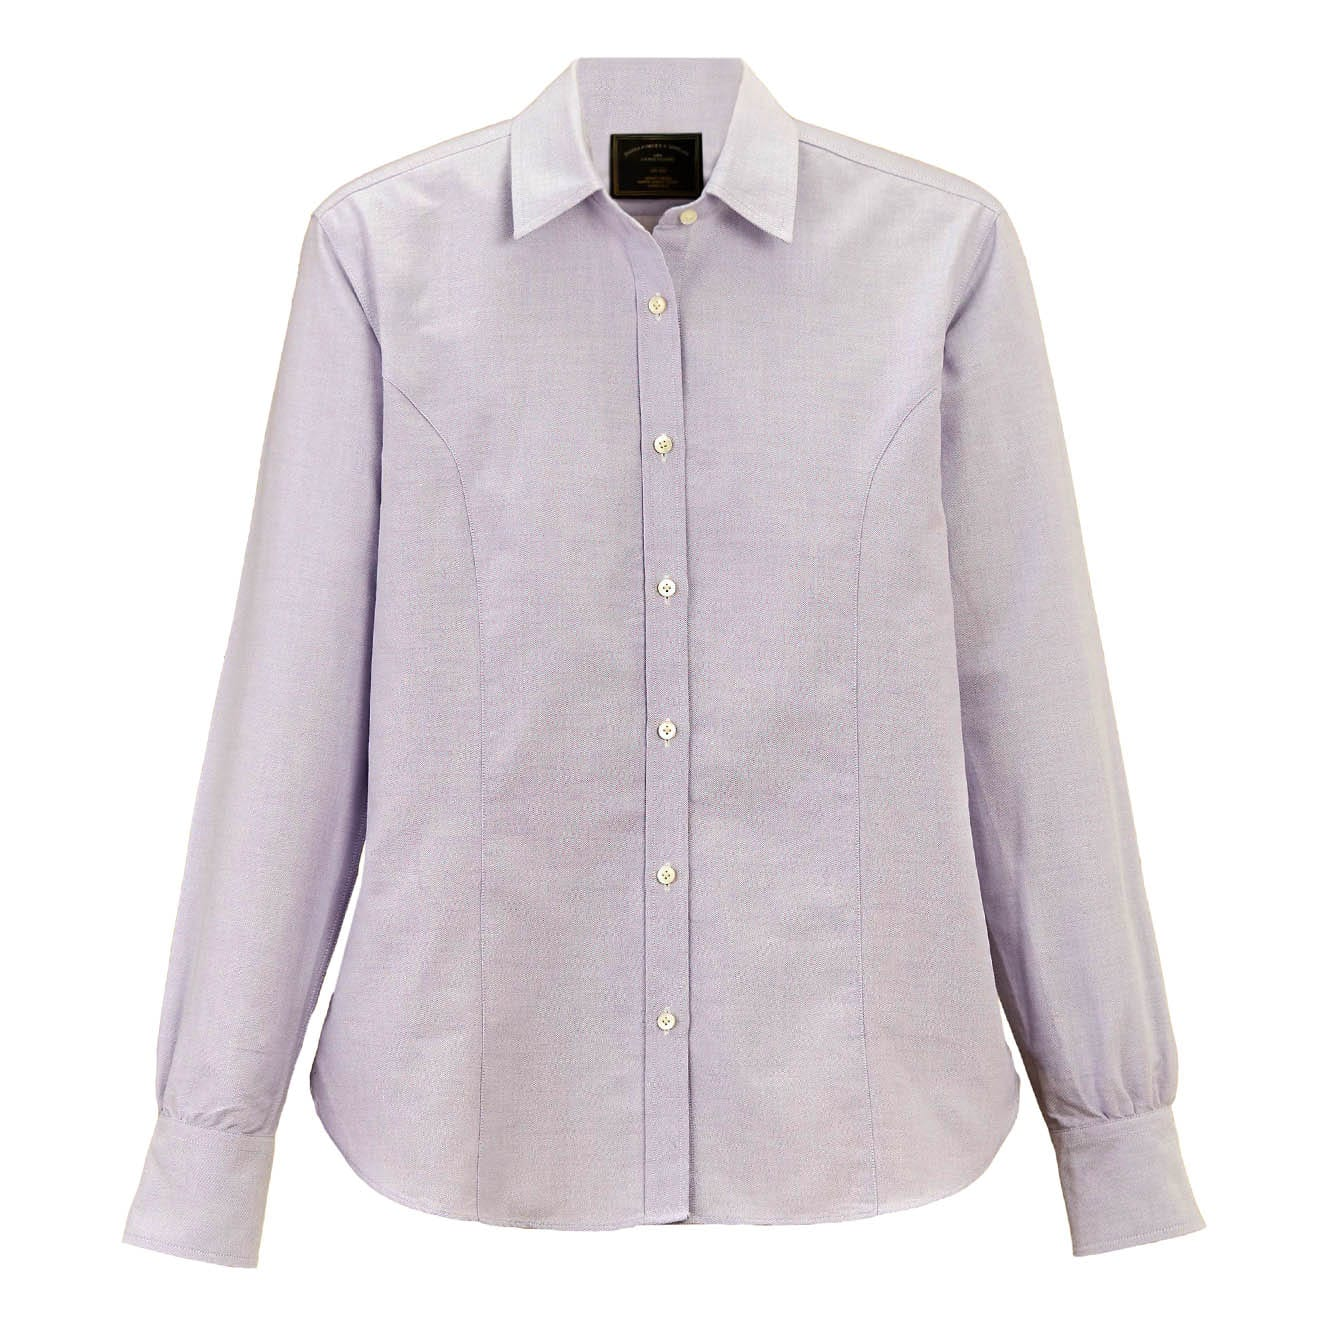 James Purdey Womens Oxford Shirt Lavender